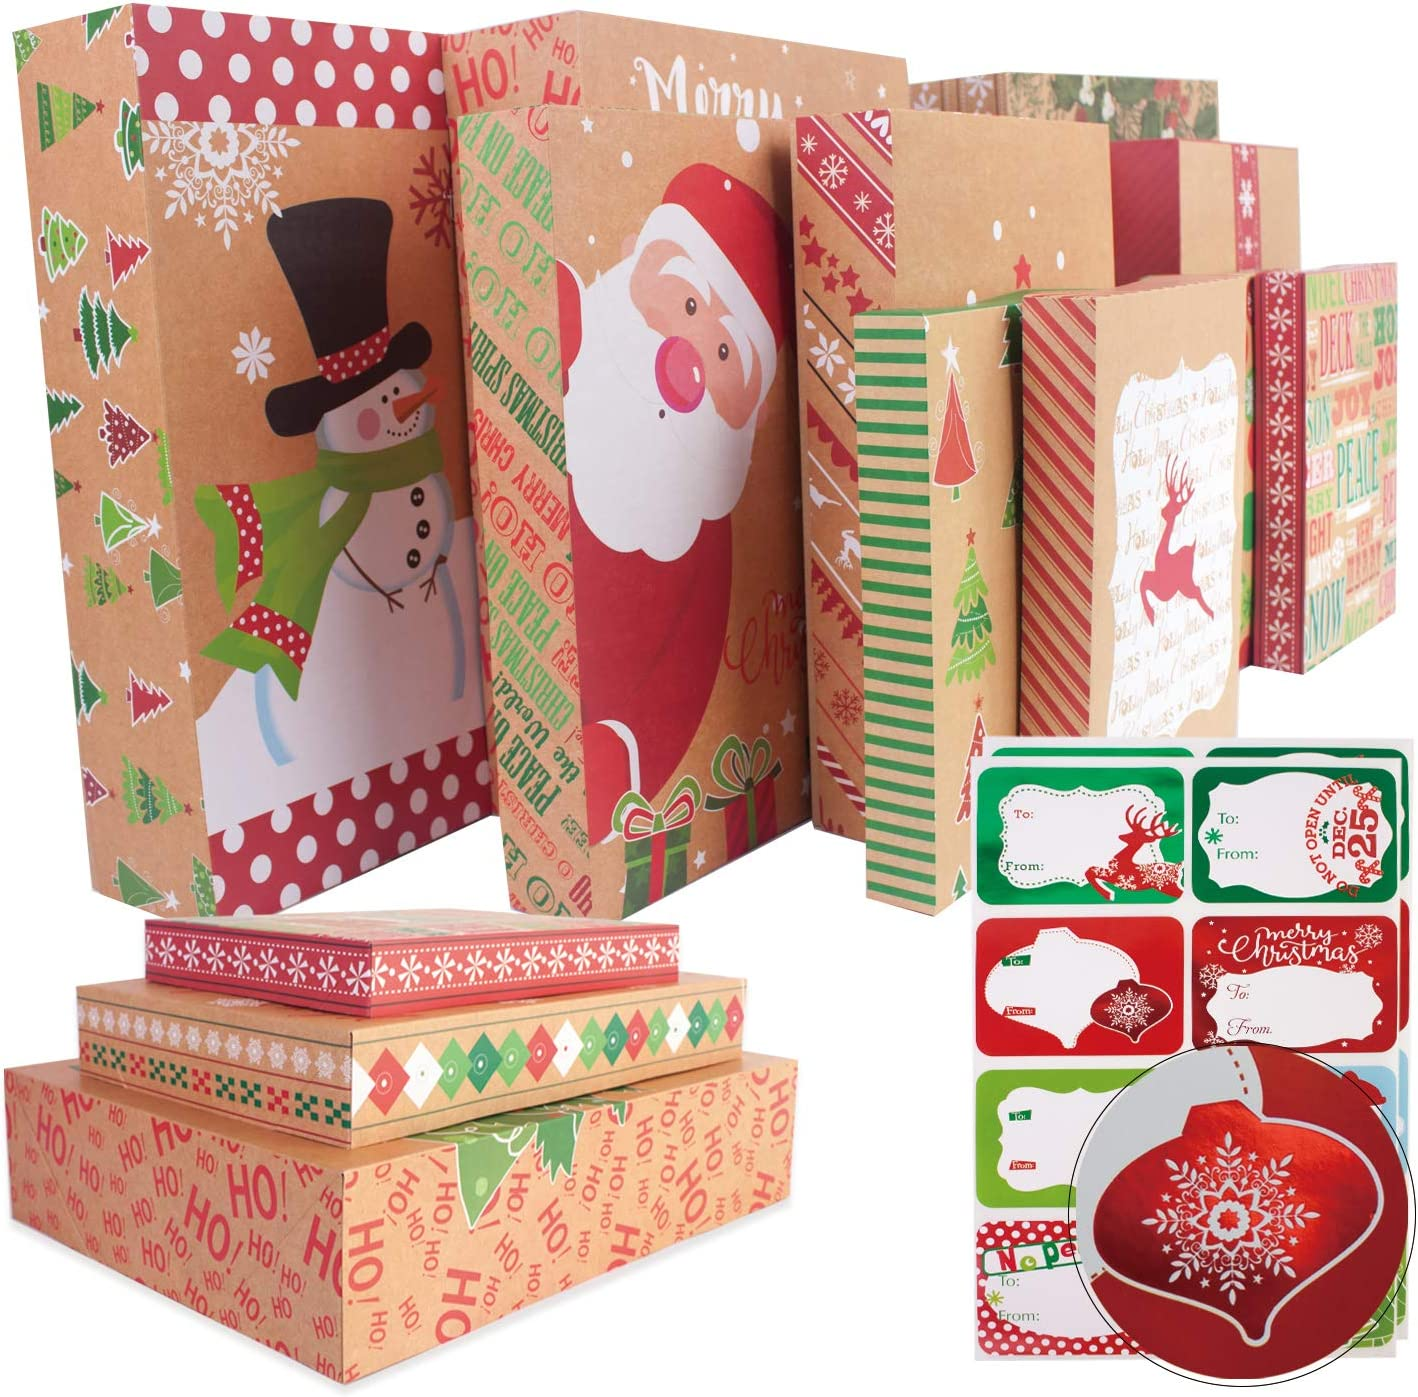 12 Kraft Christmas Gift Boxes with Lids for wrapping Large Clothes and 80 Count Foil Christmas Tag Stickers (Assorted size for wrapping Robes,Sweater, Coat Shirts and Clothes xmas Holiday Present)